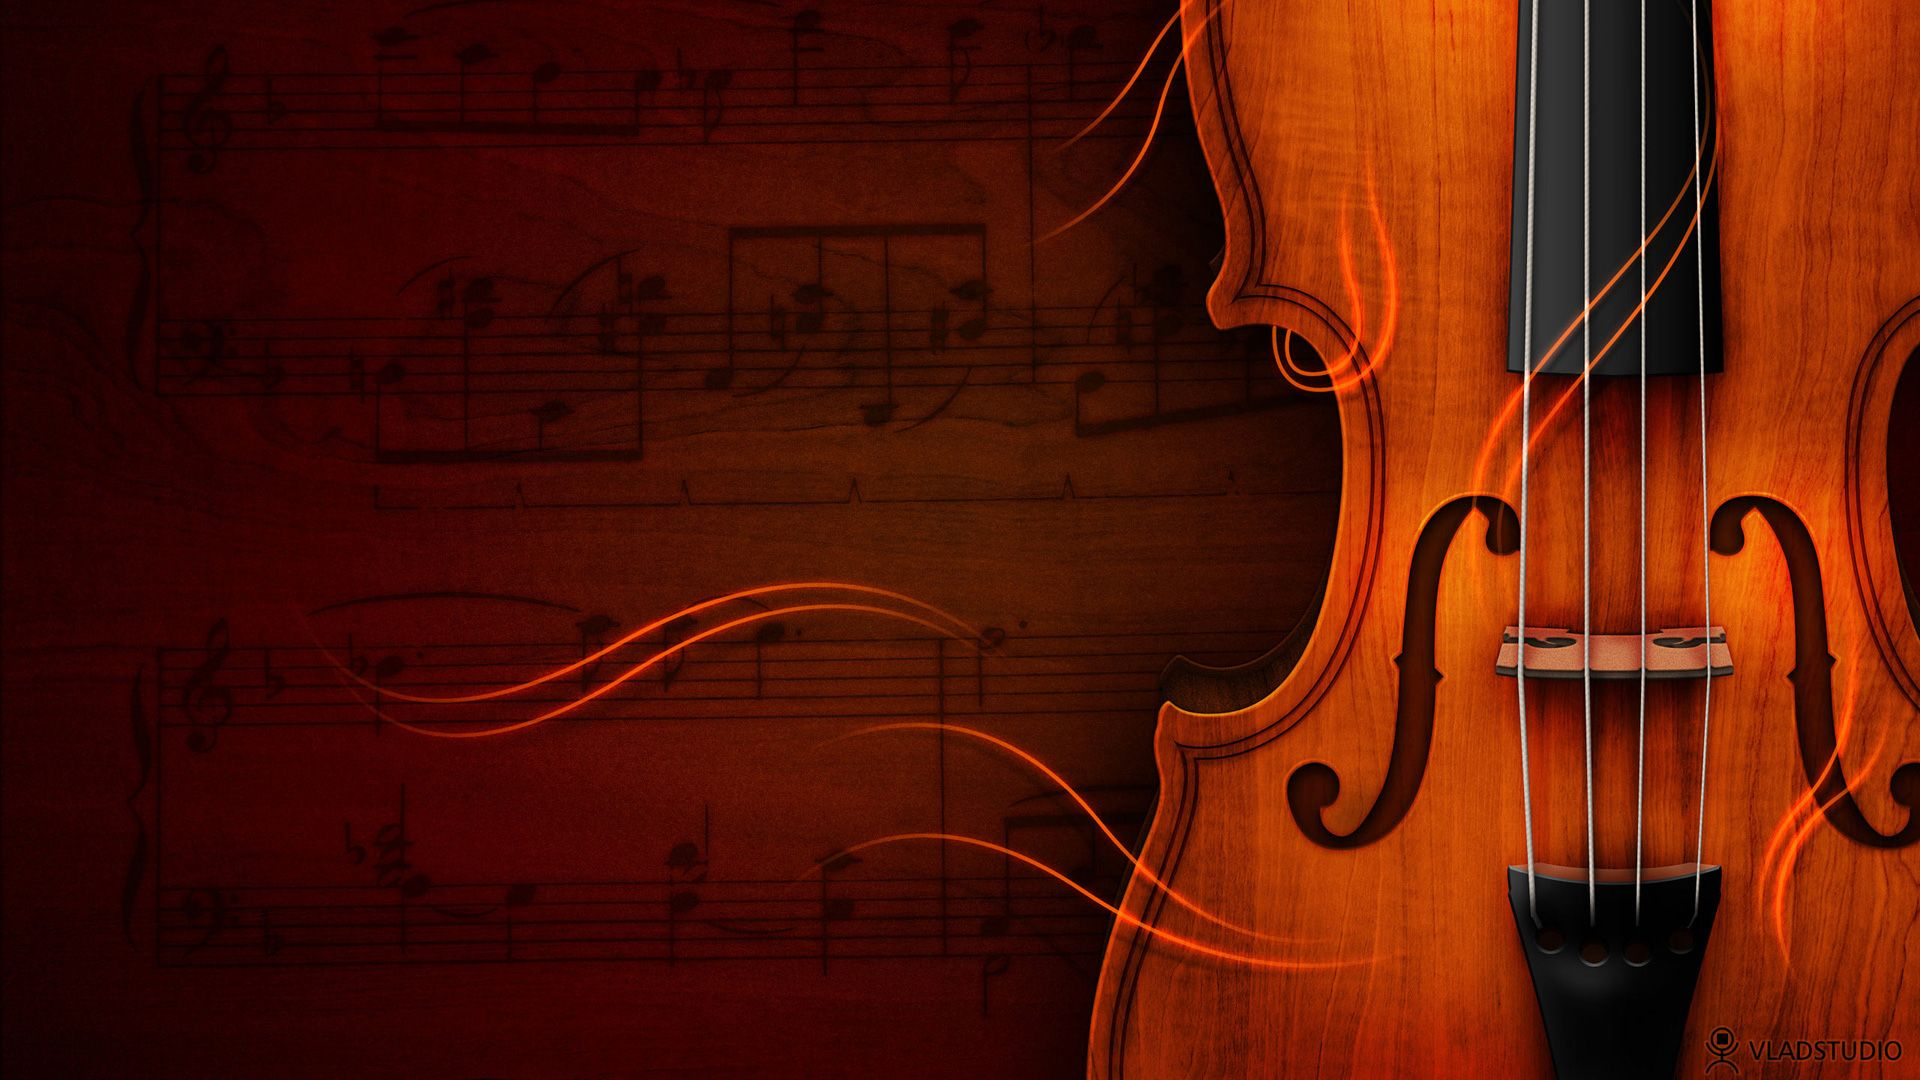 Cello Wallpaper Photo 22287 Hd Pictures: HD Wallpapers Widescreen 1080P 3D